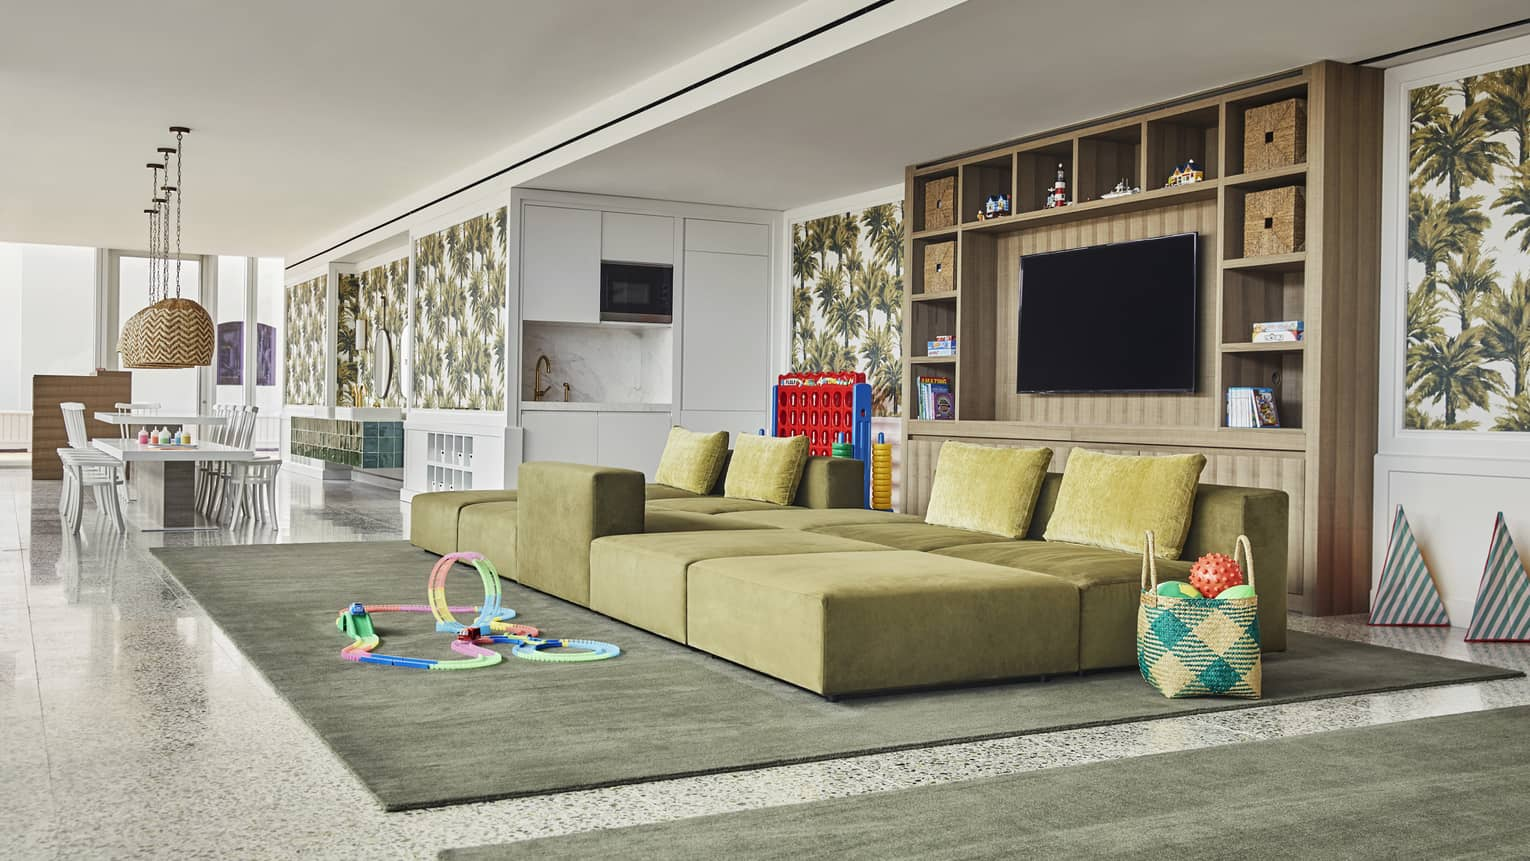 Bright kids facility with craft table, large sofa, toys and games. Specially-trained staff entertain children